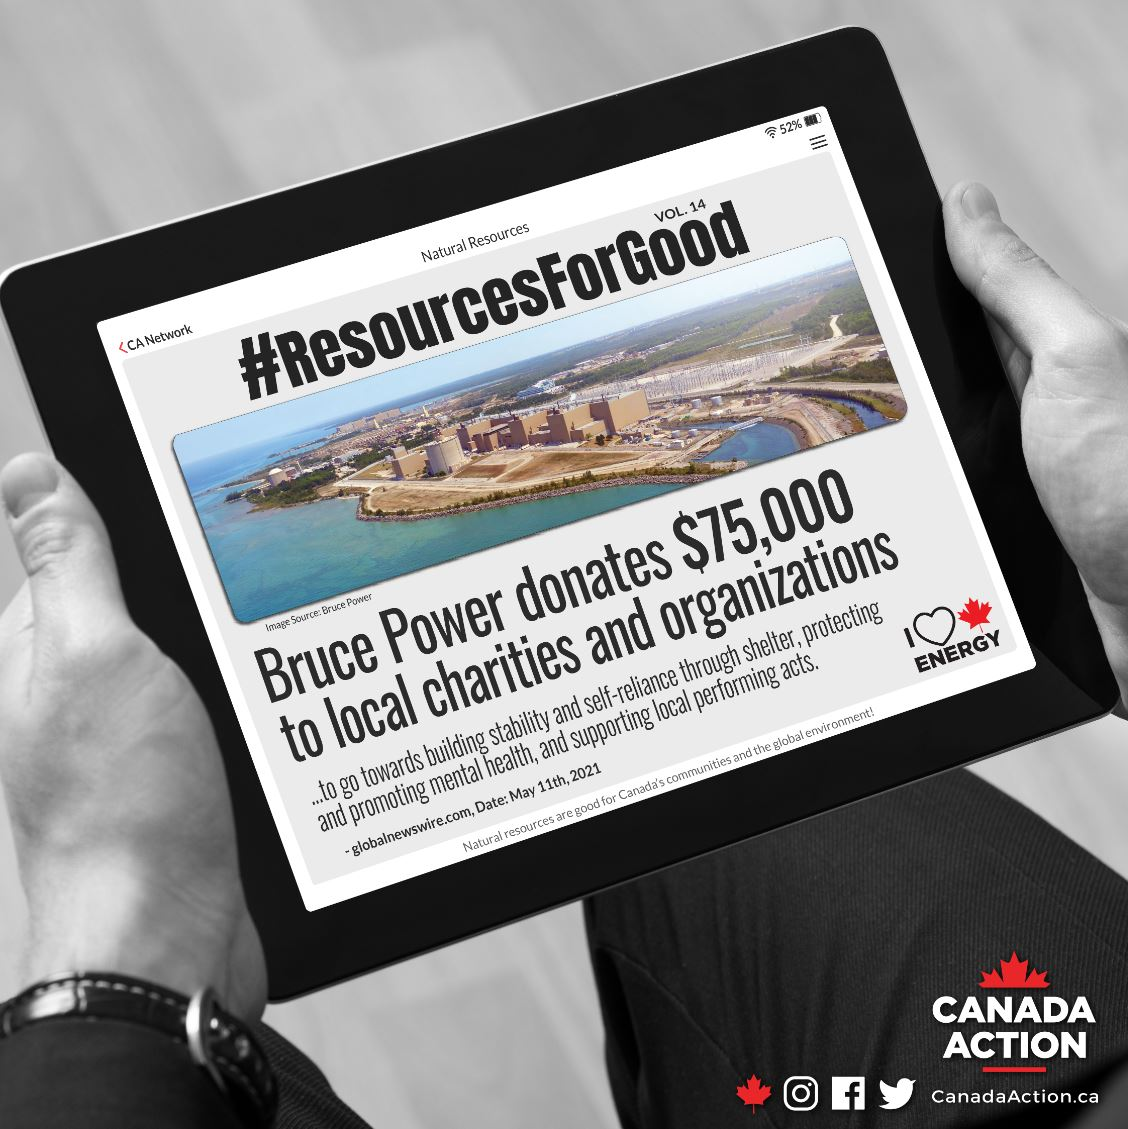 resources for good - bruce power donates $75,000 to charities